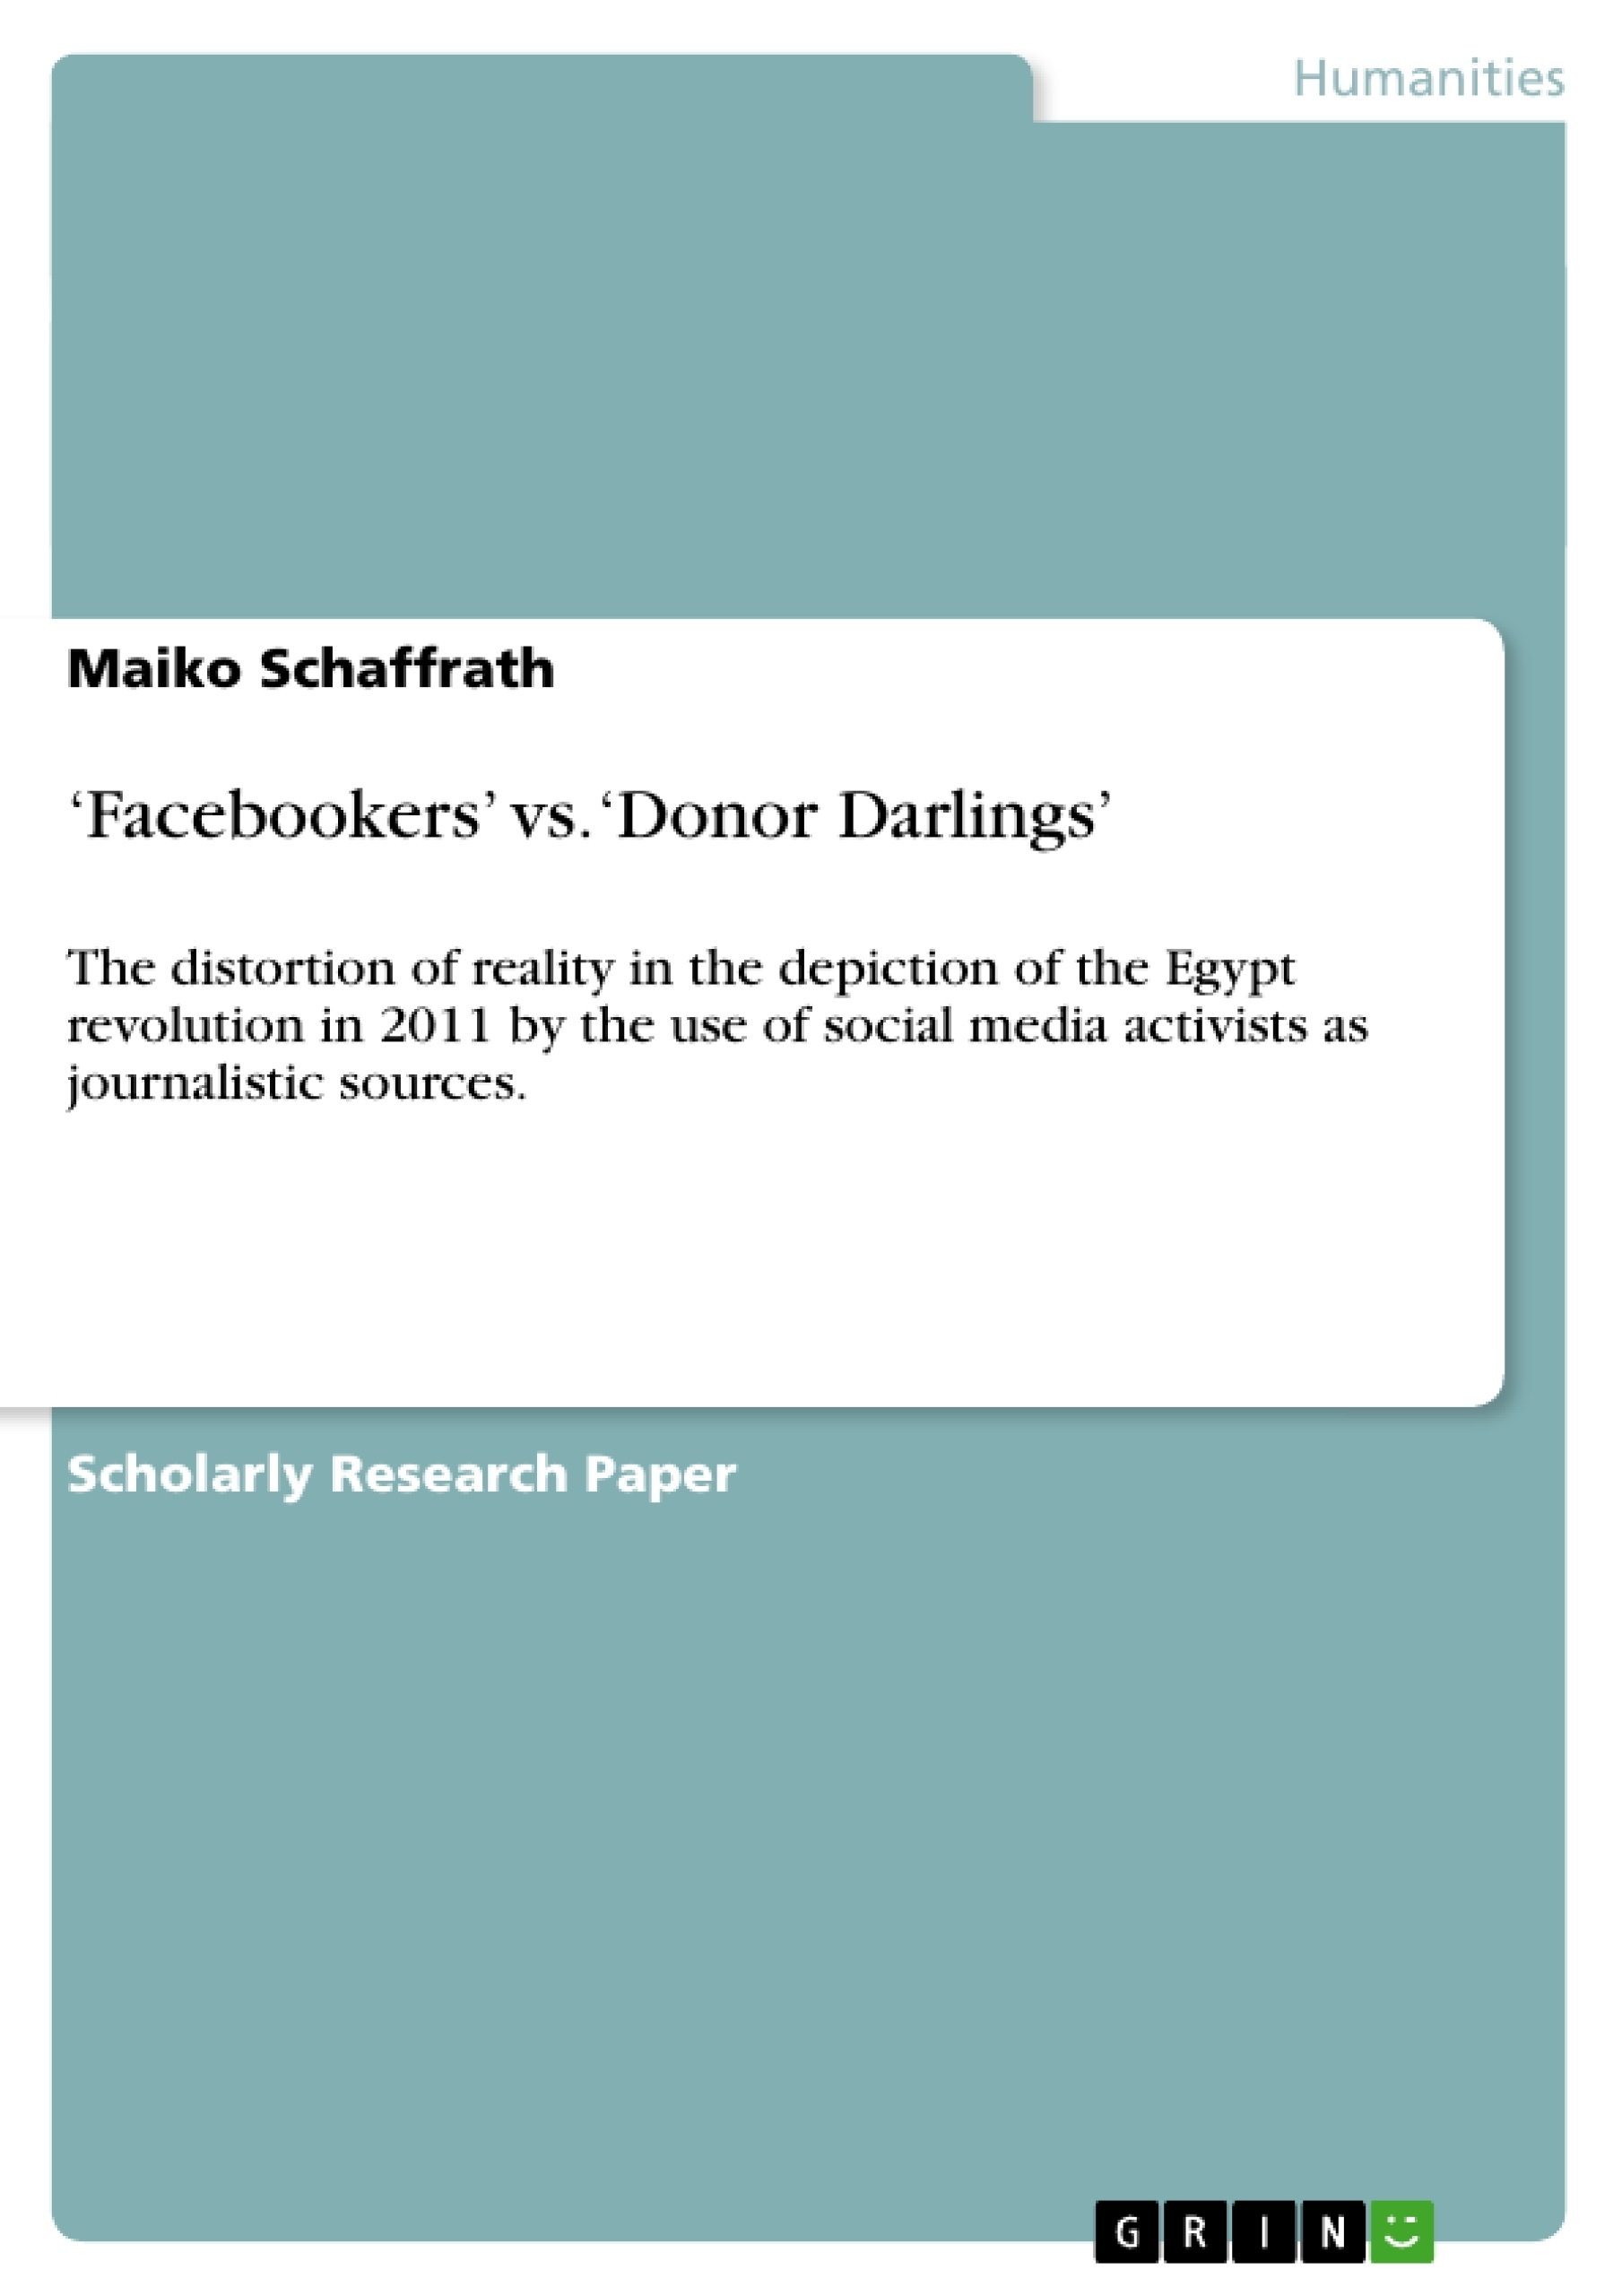 Title: 'Facebookers' vs. 'Donor Darlings'